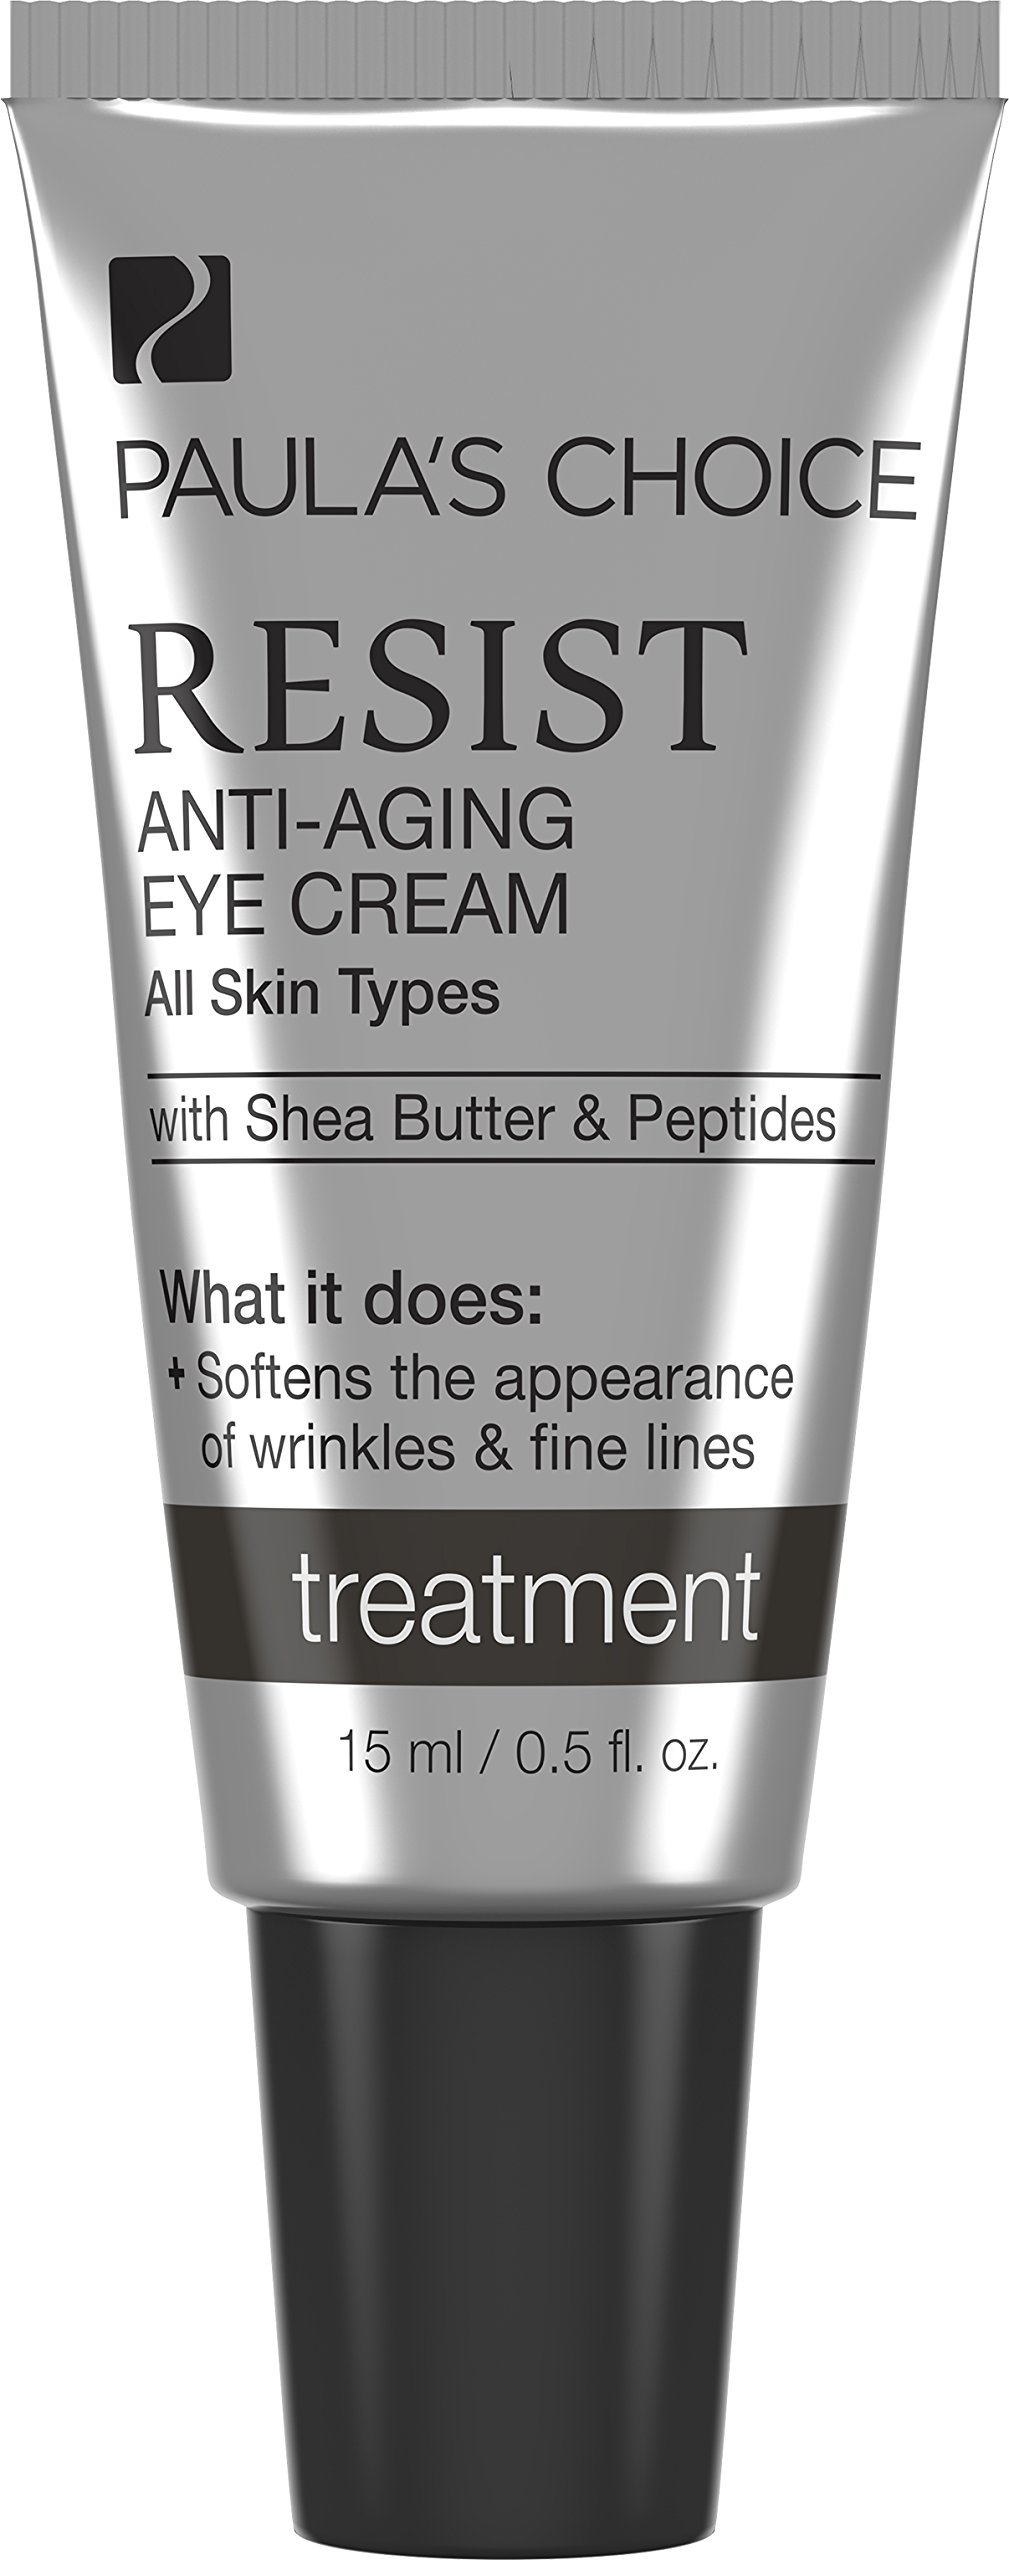 Paula's Choice RESIST-Anti-Aging Eye Cream w/Shea Butter & Peptides, 0.5 oz Tube Face Cream for Fine Lines & Wrinkles Around the Eye